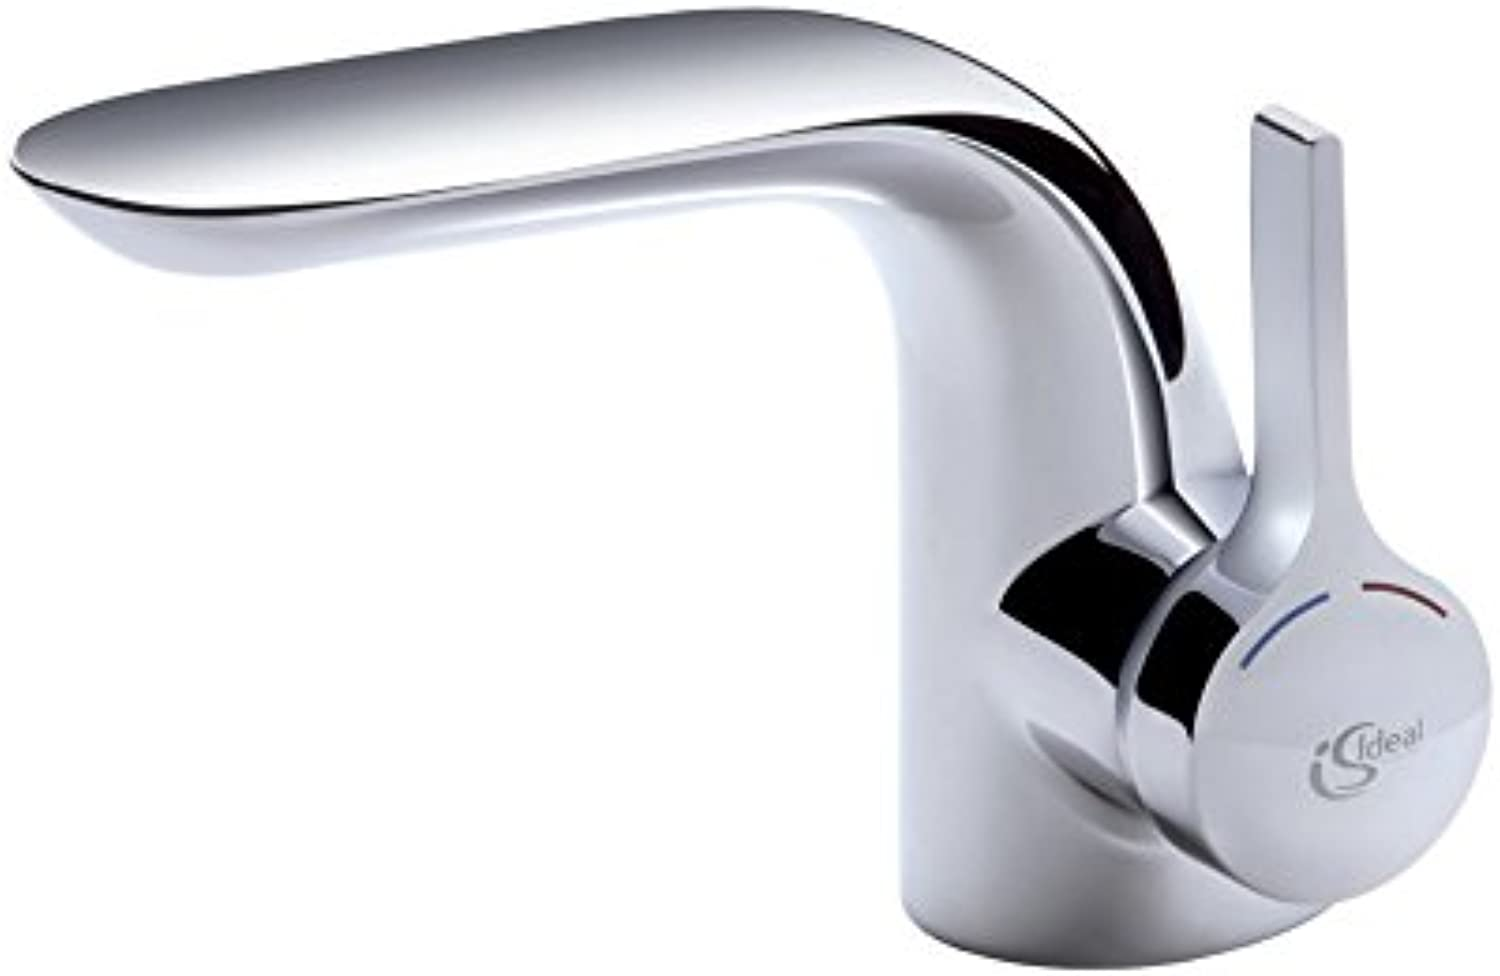 Ideal Standard A4258AA Washbasin Mixer Tap Chrome with Drainage Fitting Copper Pipe